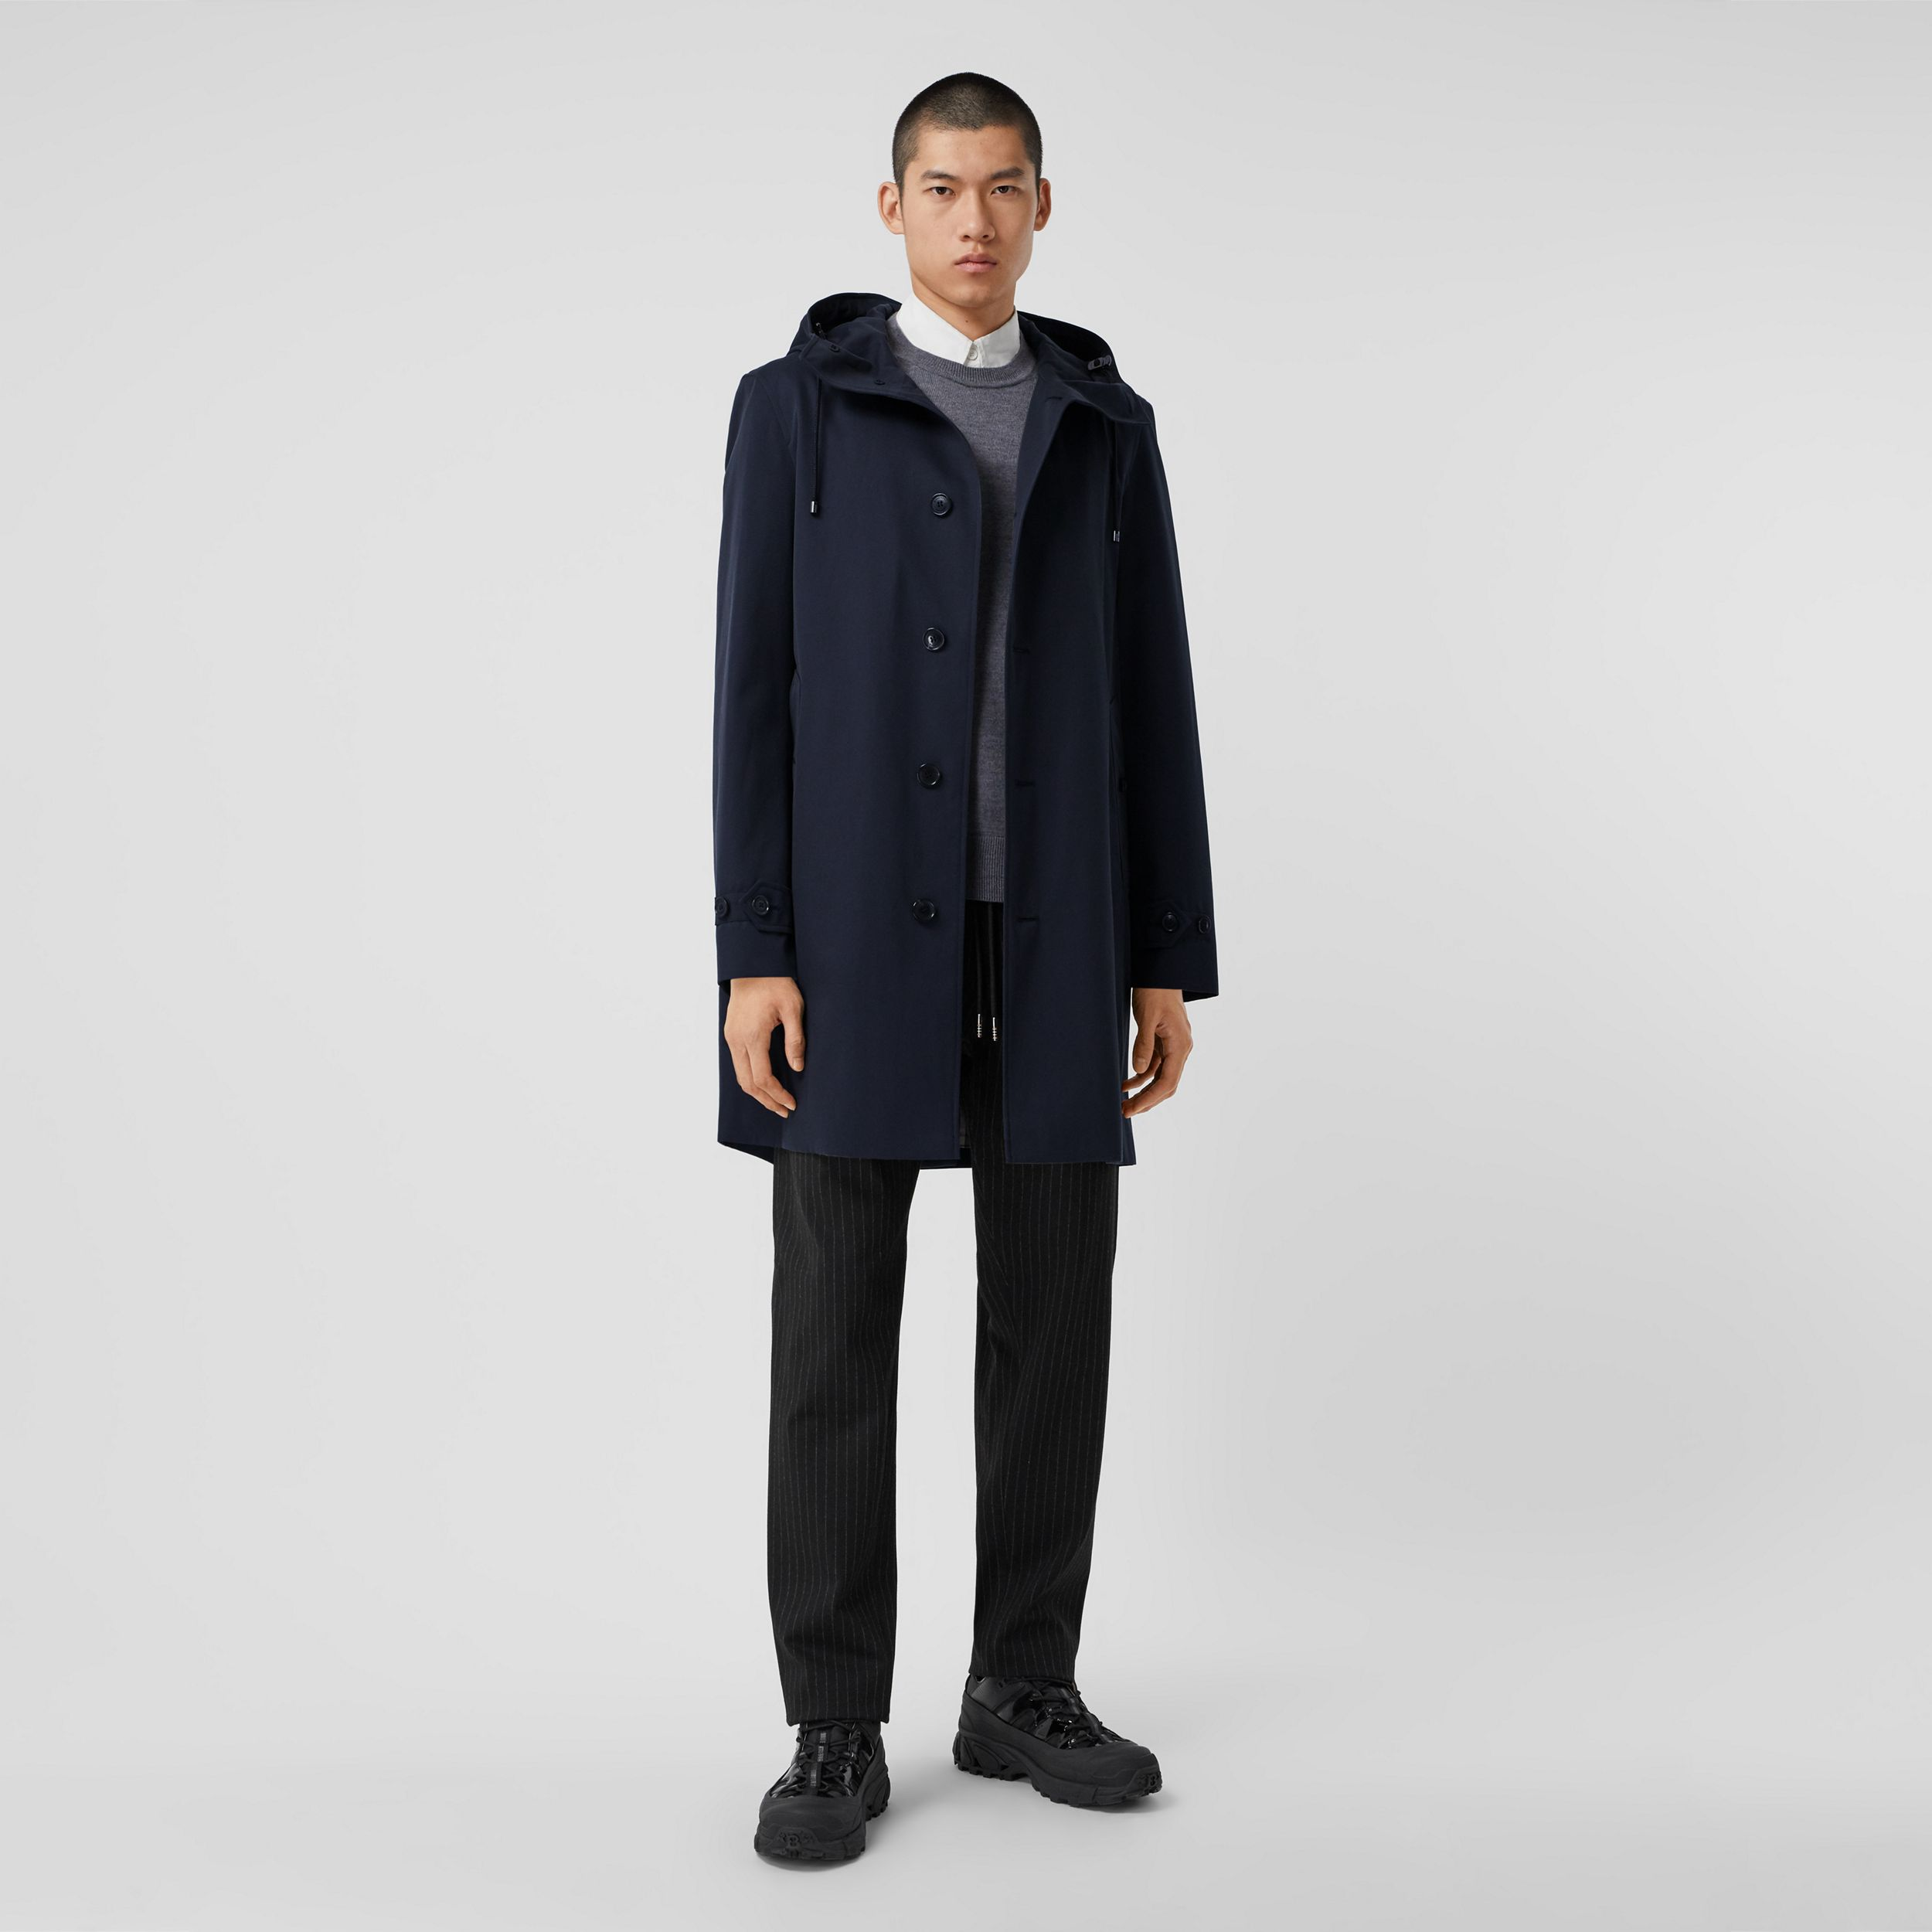 Cotton Gabardine Hooded Coat in Midnight - Men | Burberry - 1